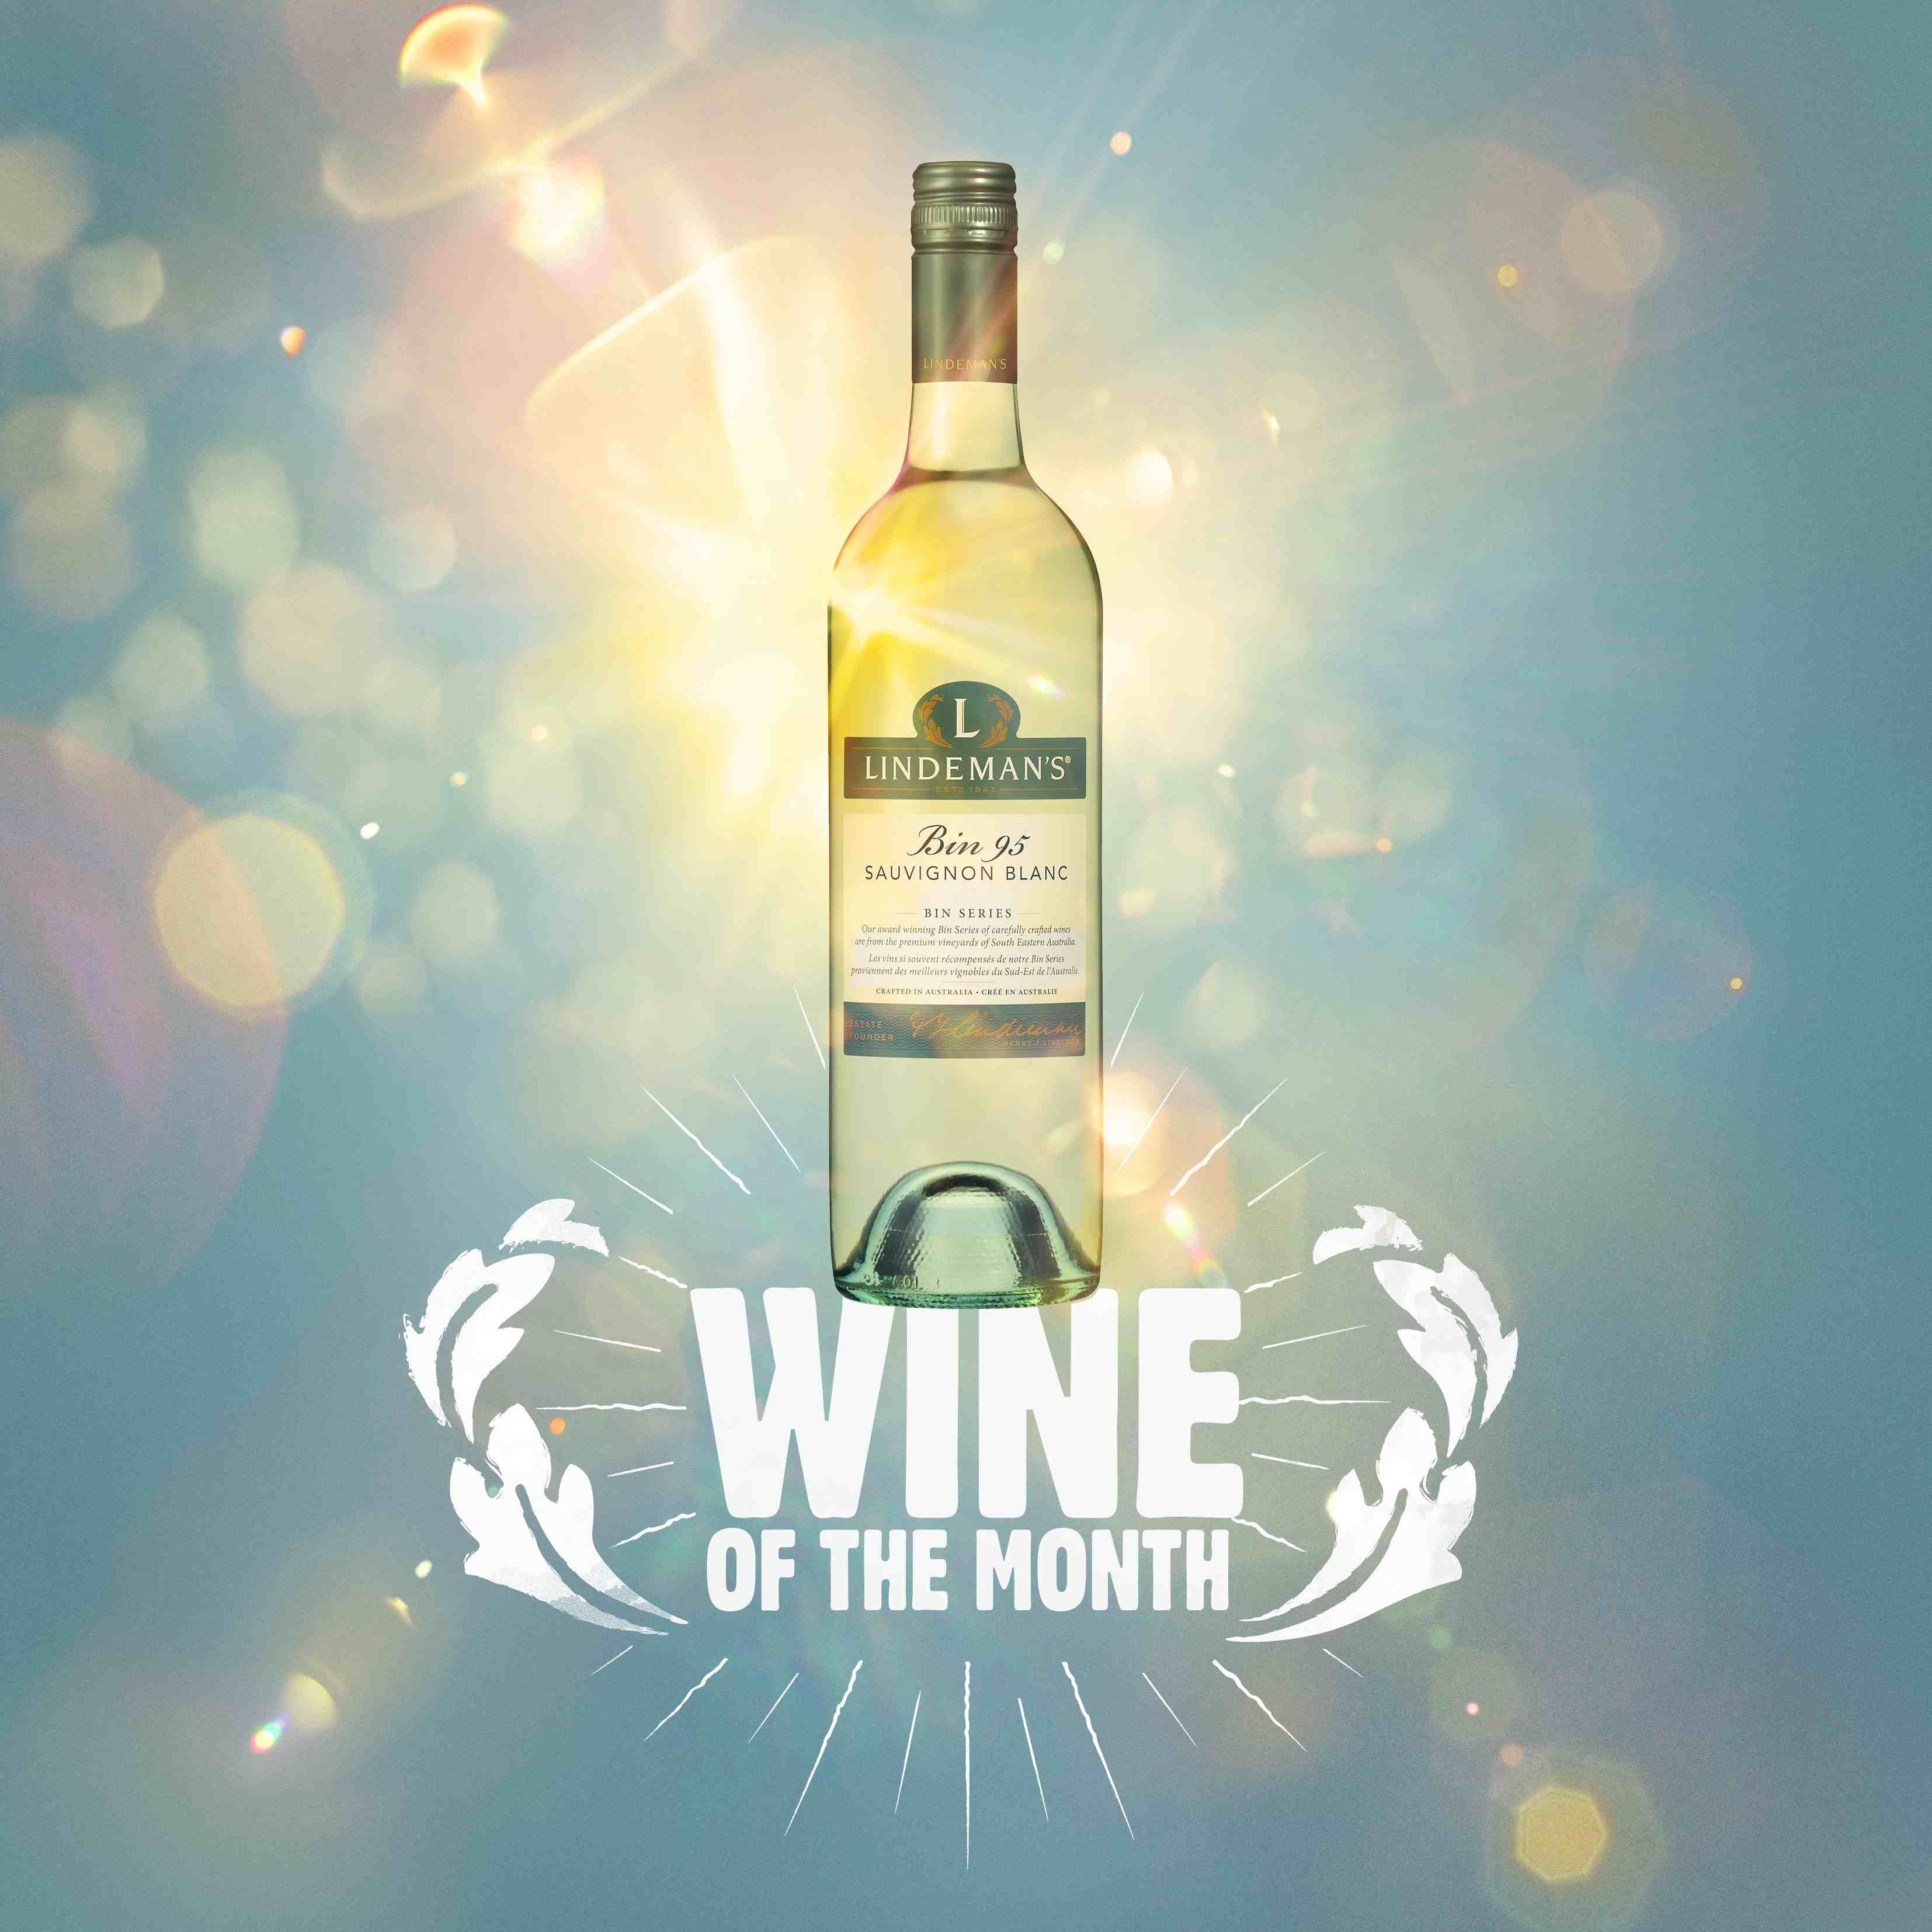 May's Wine of the Month is Bin 95 Sauvignon Blanc. A refreshing, fruity wine that suits all tastes and occasions.   Get all the details here http://bit.ly/Bin95SauvignonBlanc